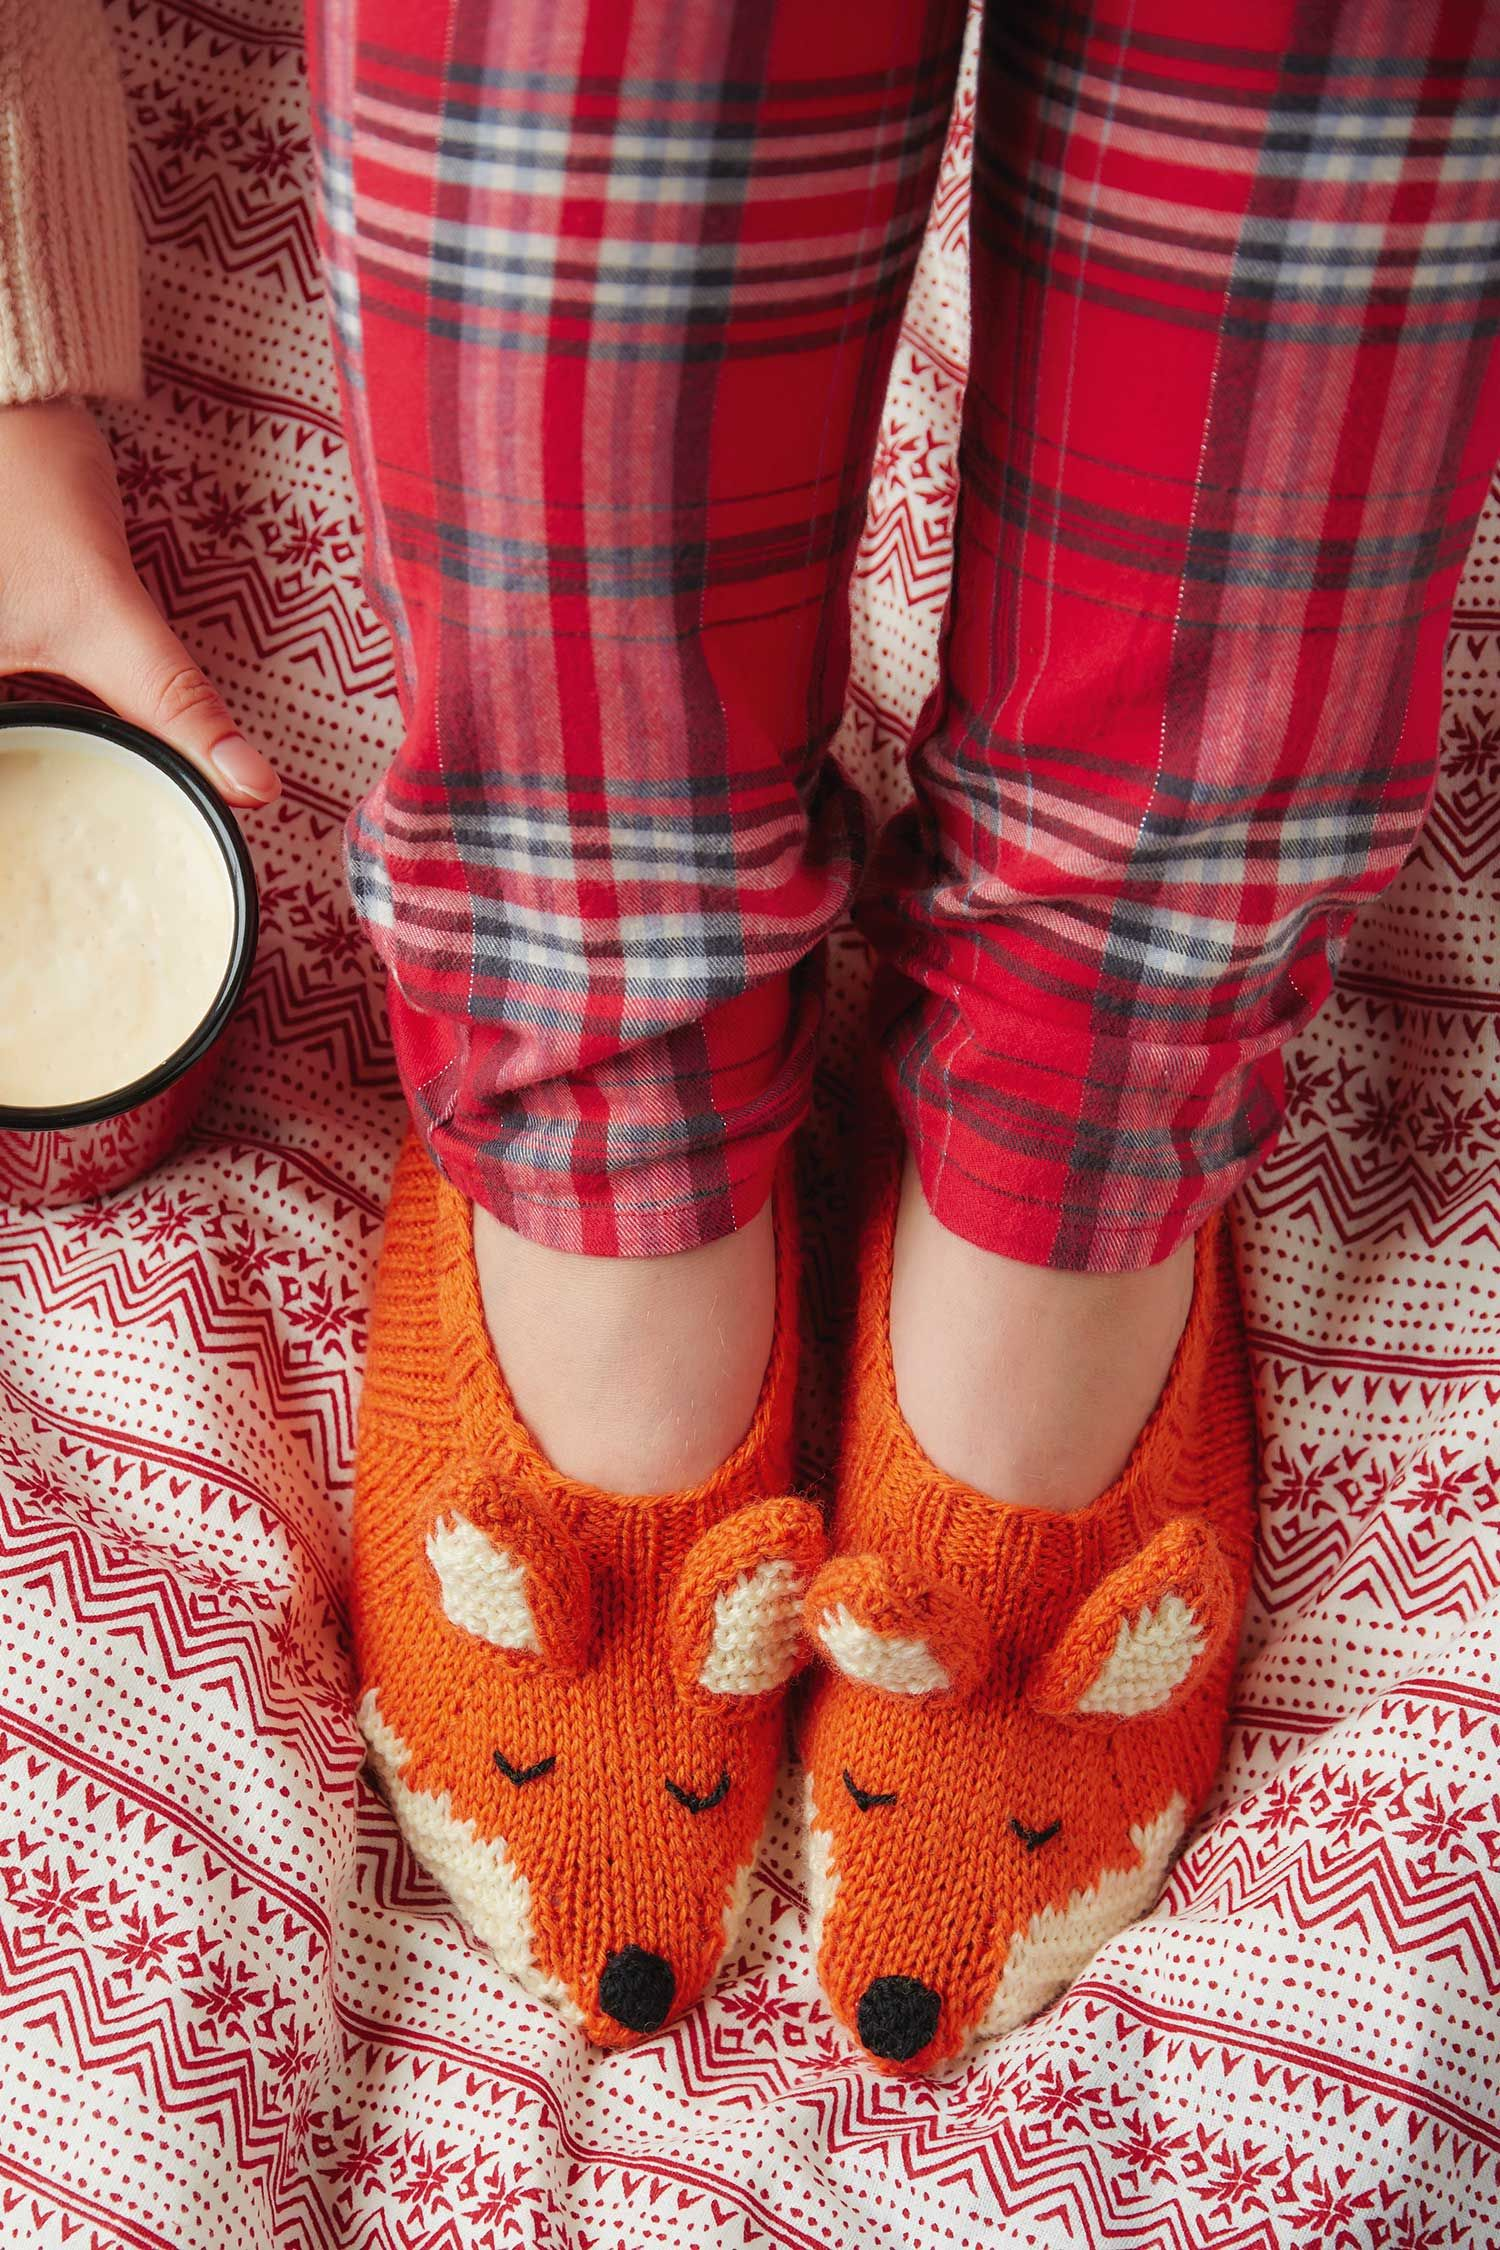 Fox slippers knitting pattern (Mollie Makes)   Fox slippers, Foxes ...